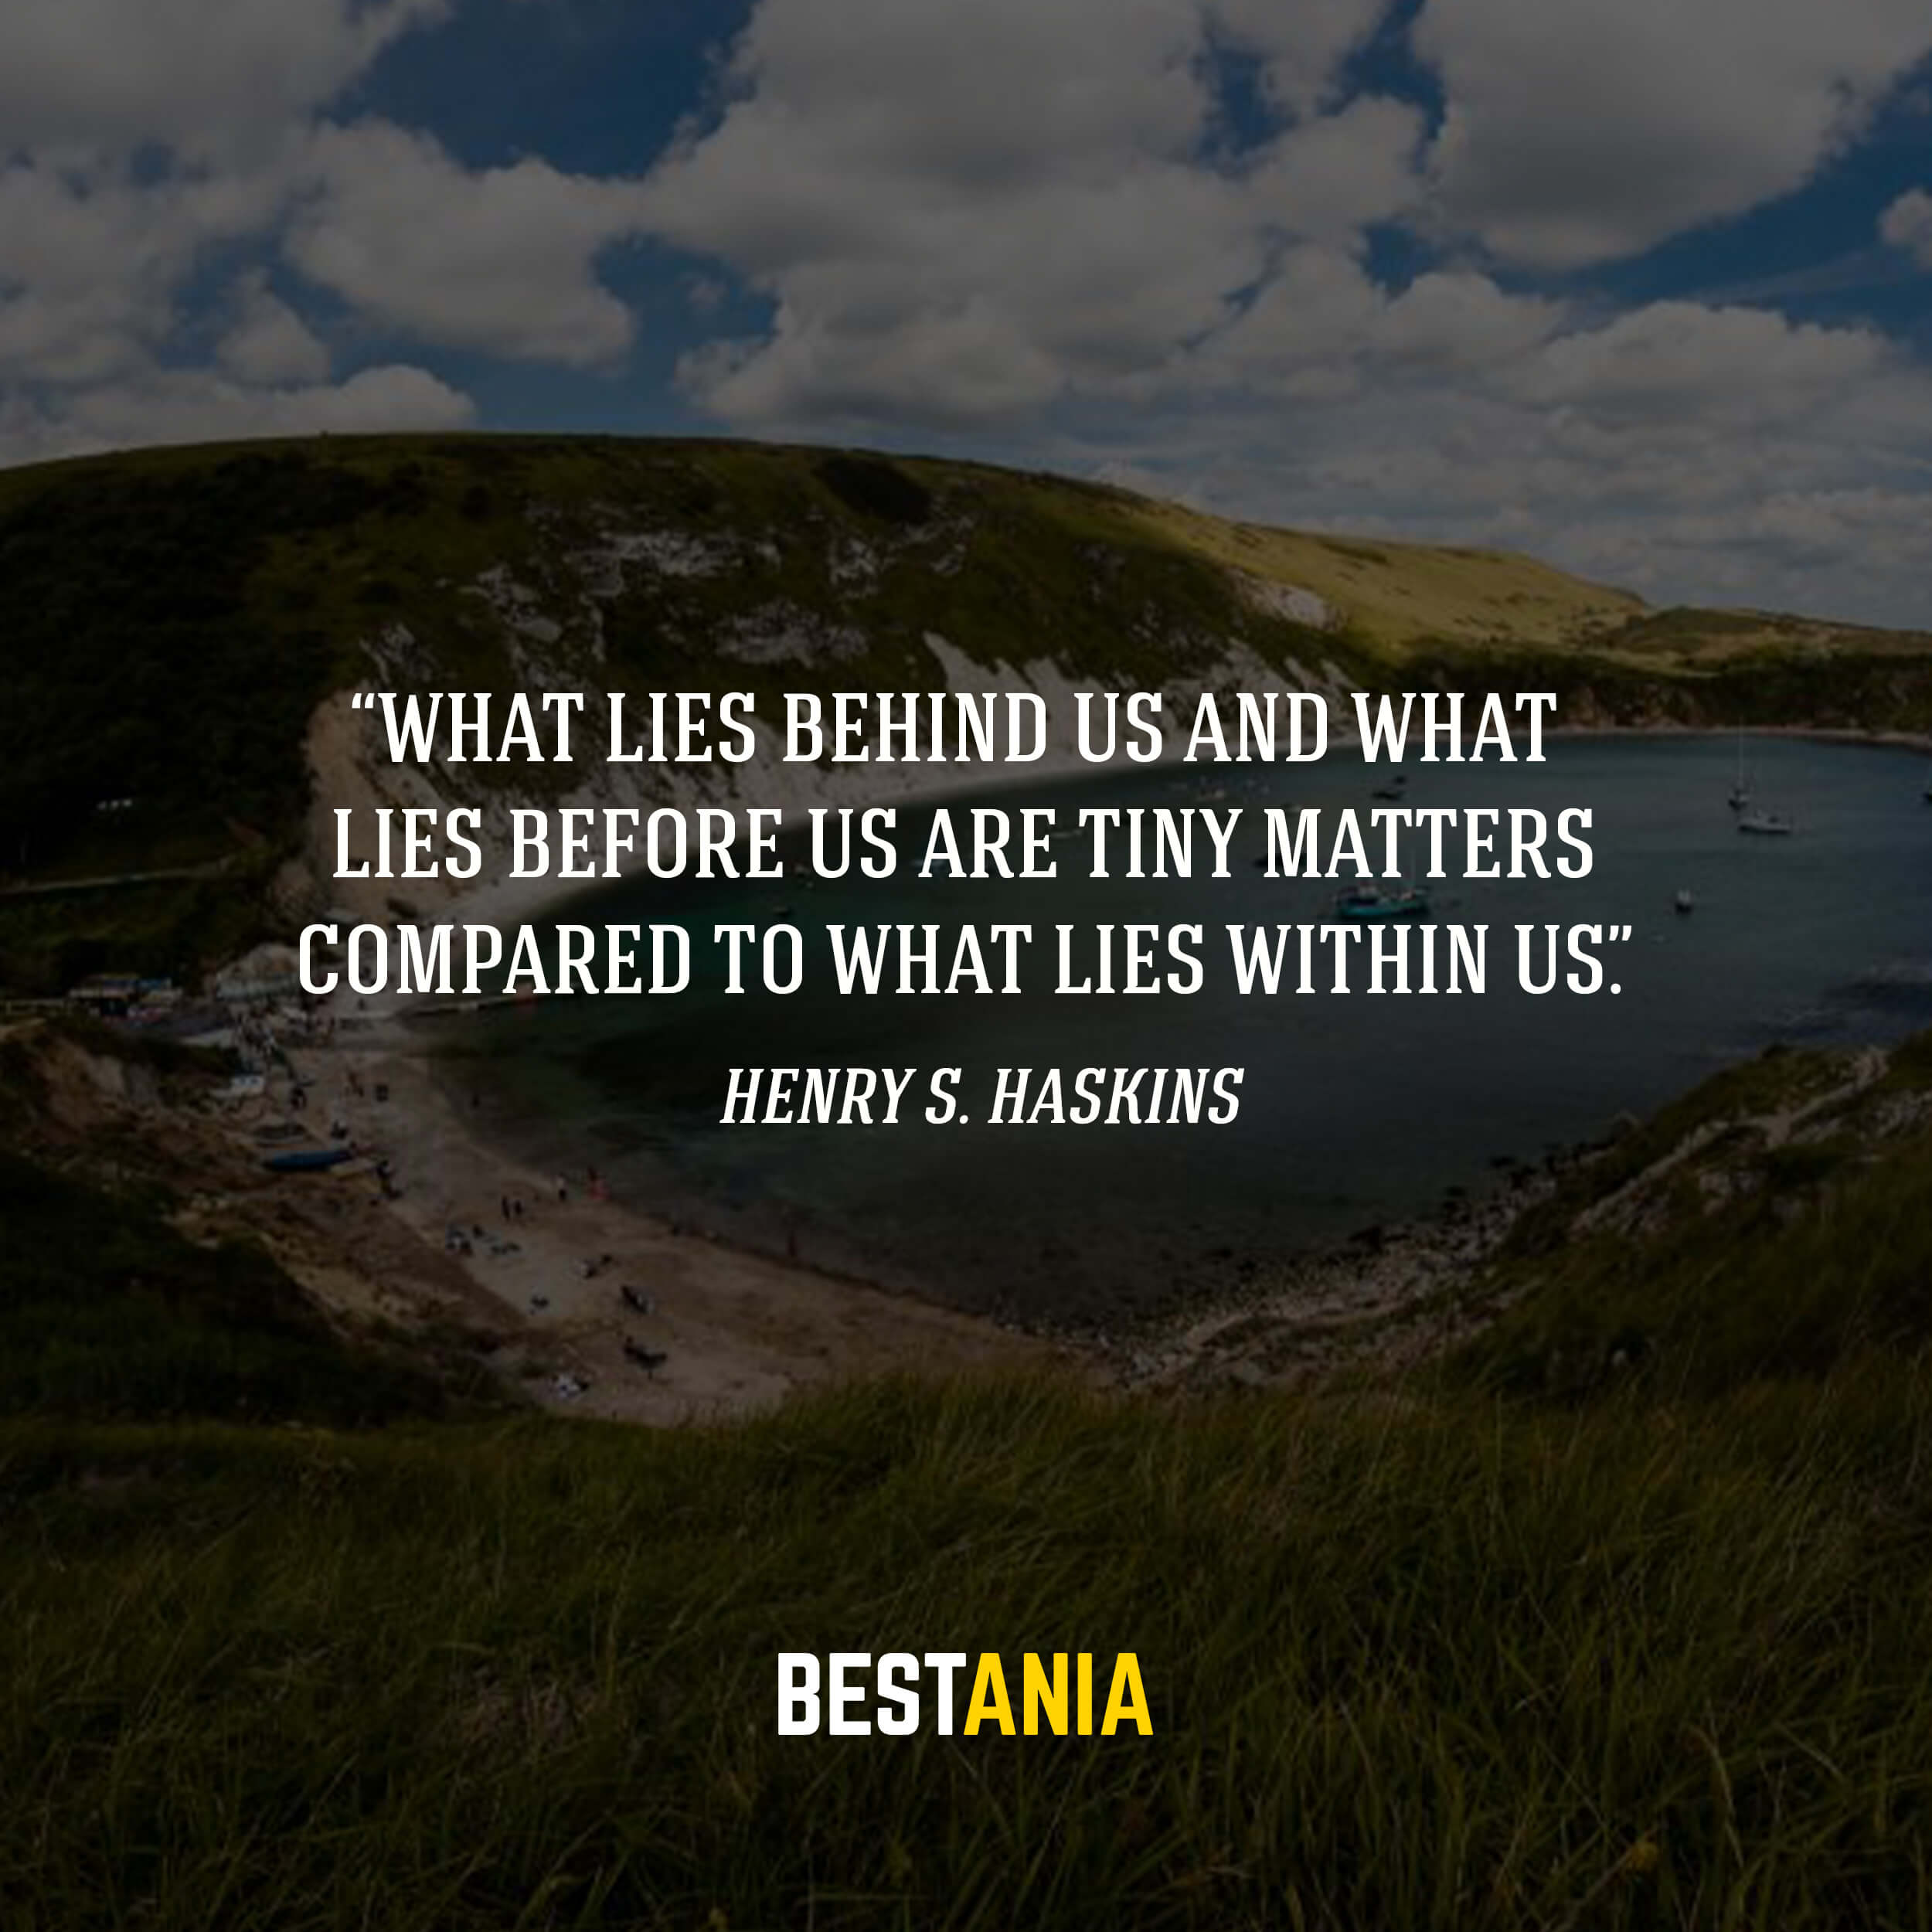 """What lies behind us and what lies before us are tiny matters compared to what lies within us."" – Henry S. Haskins"